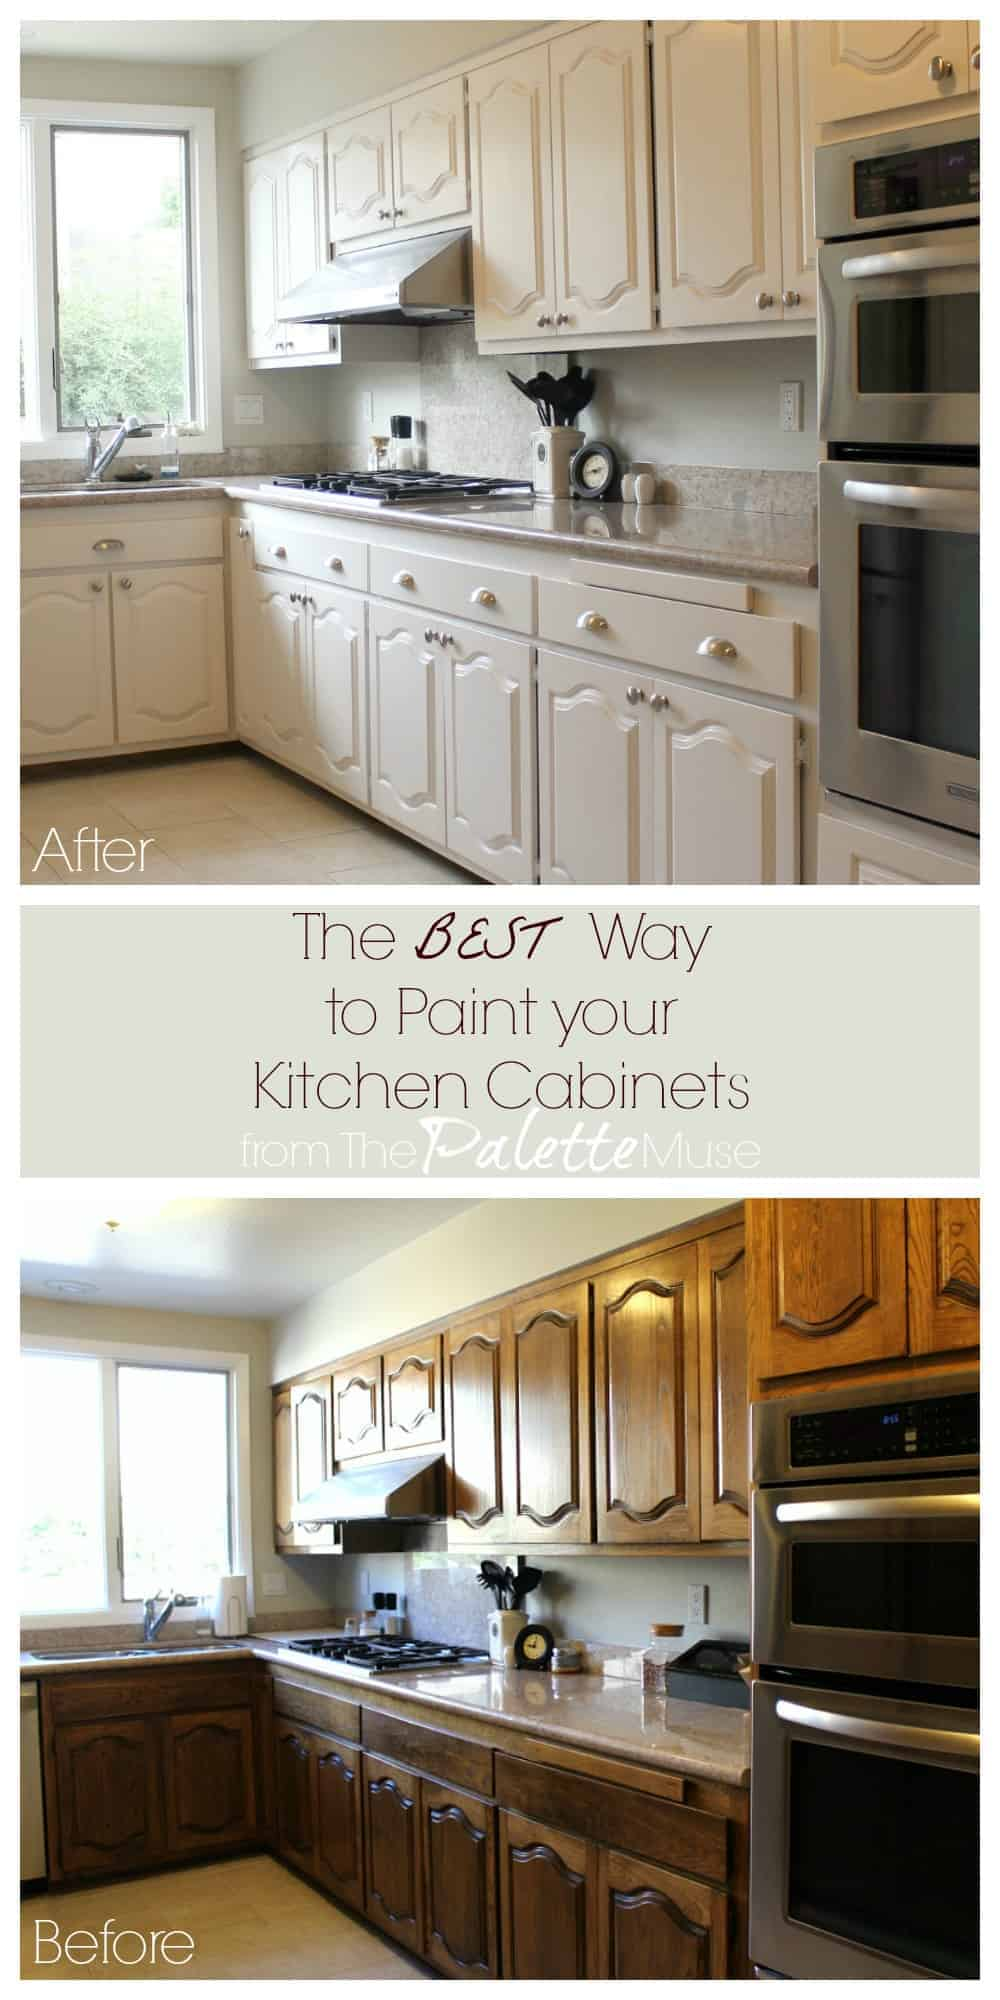 The Best Way to Paint Kitchen Cabinets - The Palette Muse